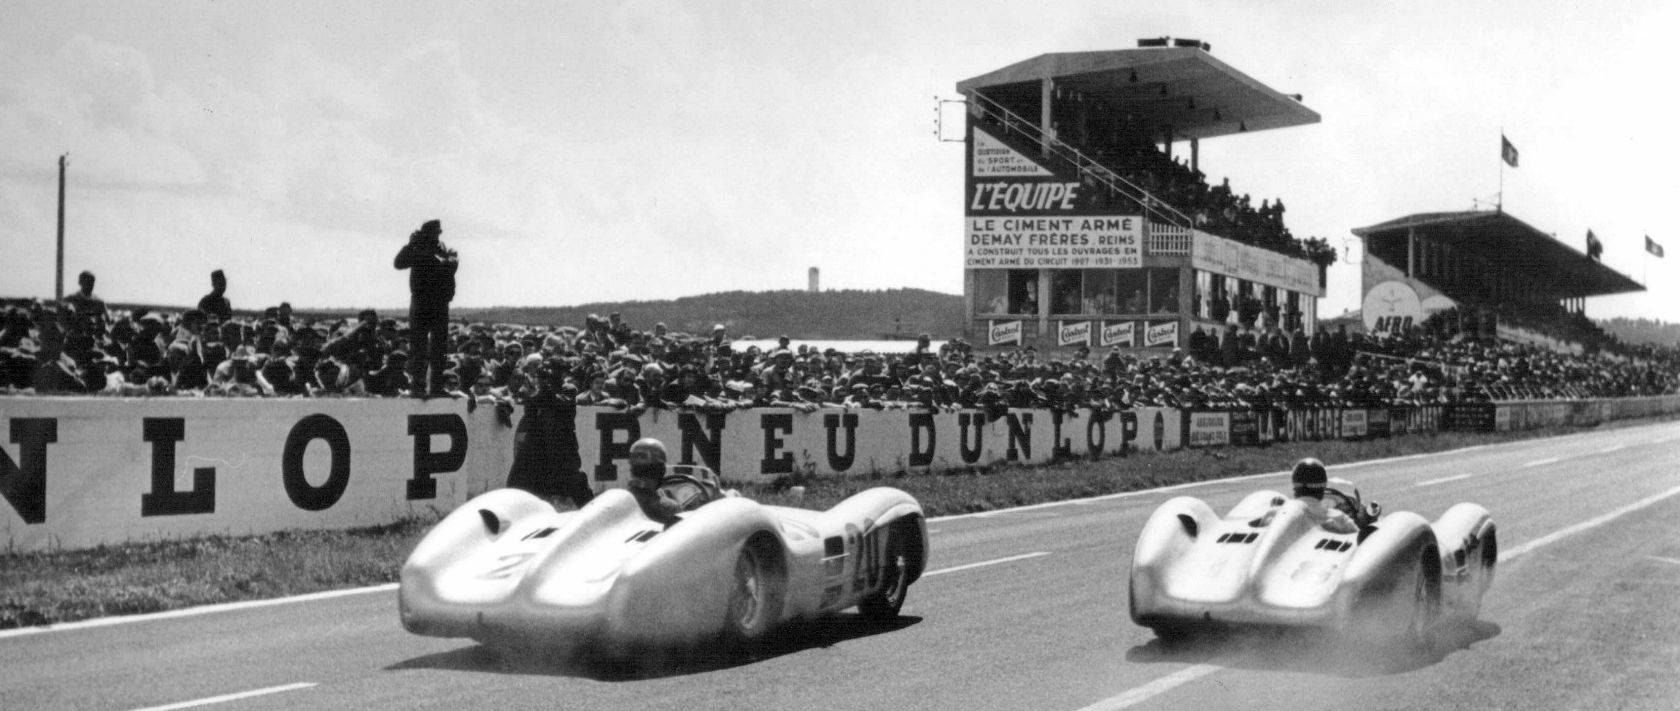 A new start with a new racing car: On 4 July 1954, Mercedes-Benz starts in Formula 1 for the first time and wins the French Grand Prix in Reims with the W 196 R, moving on to take a one-two victory.